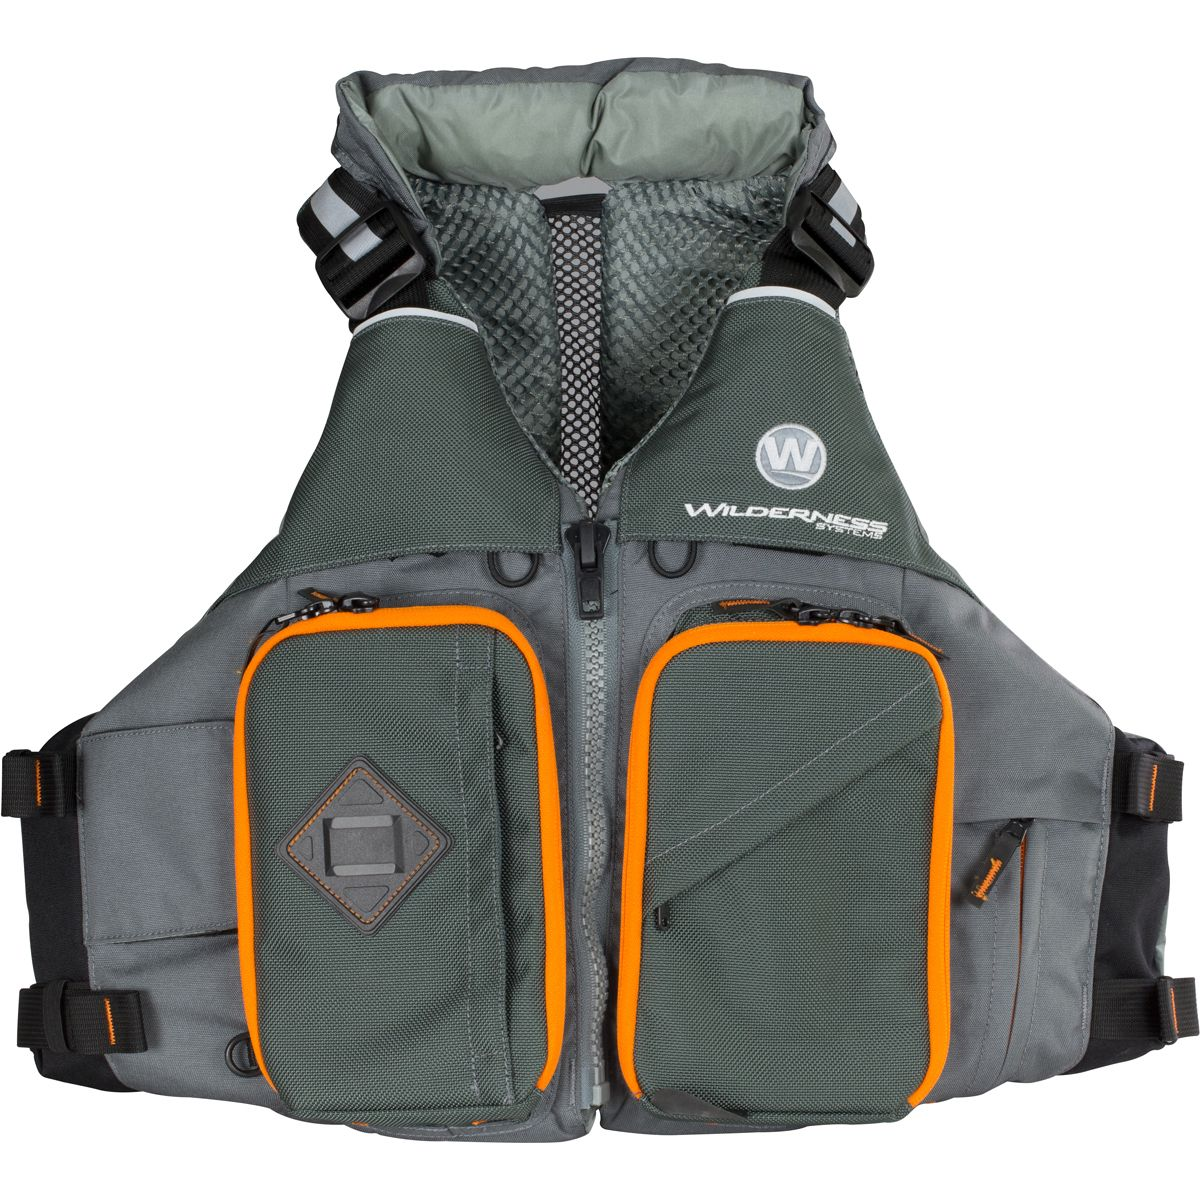 photo: Wilderness Systems Wildy Fisher life jacket/pfd